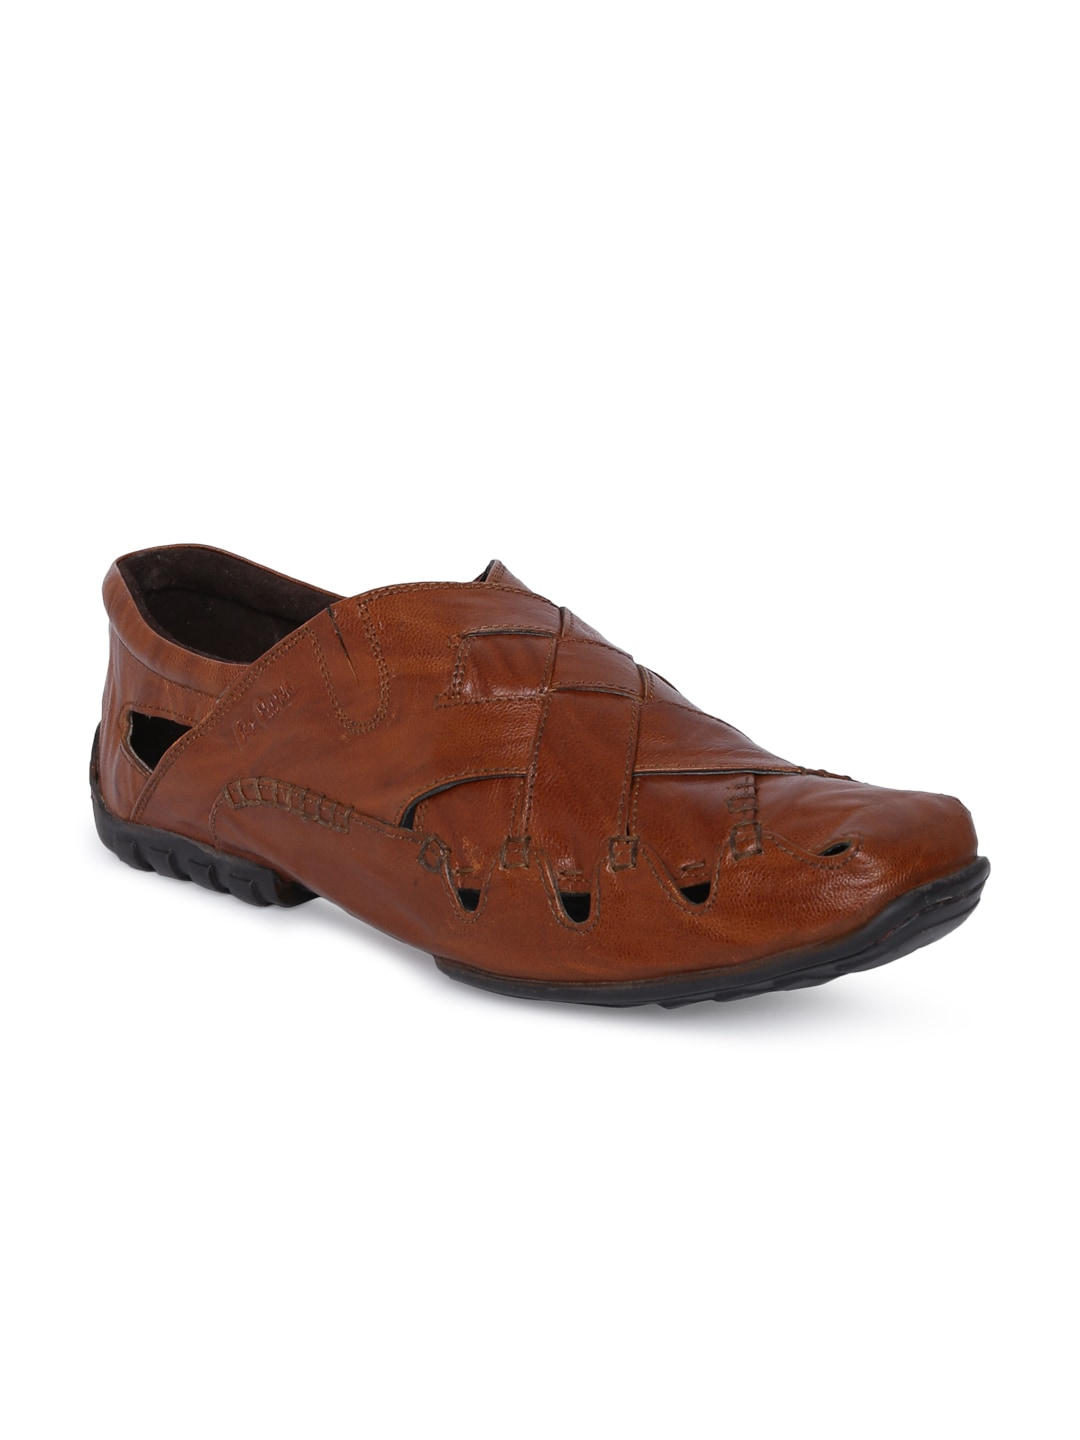 6025aa118ab0 Lee Cooper Shoes - Shop for Lee Cooper Shoes Online